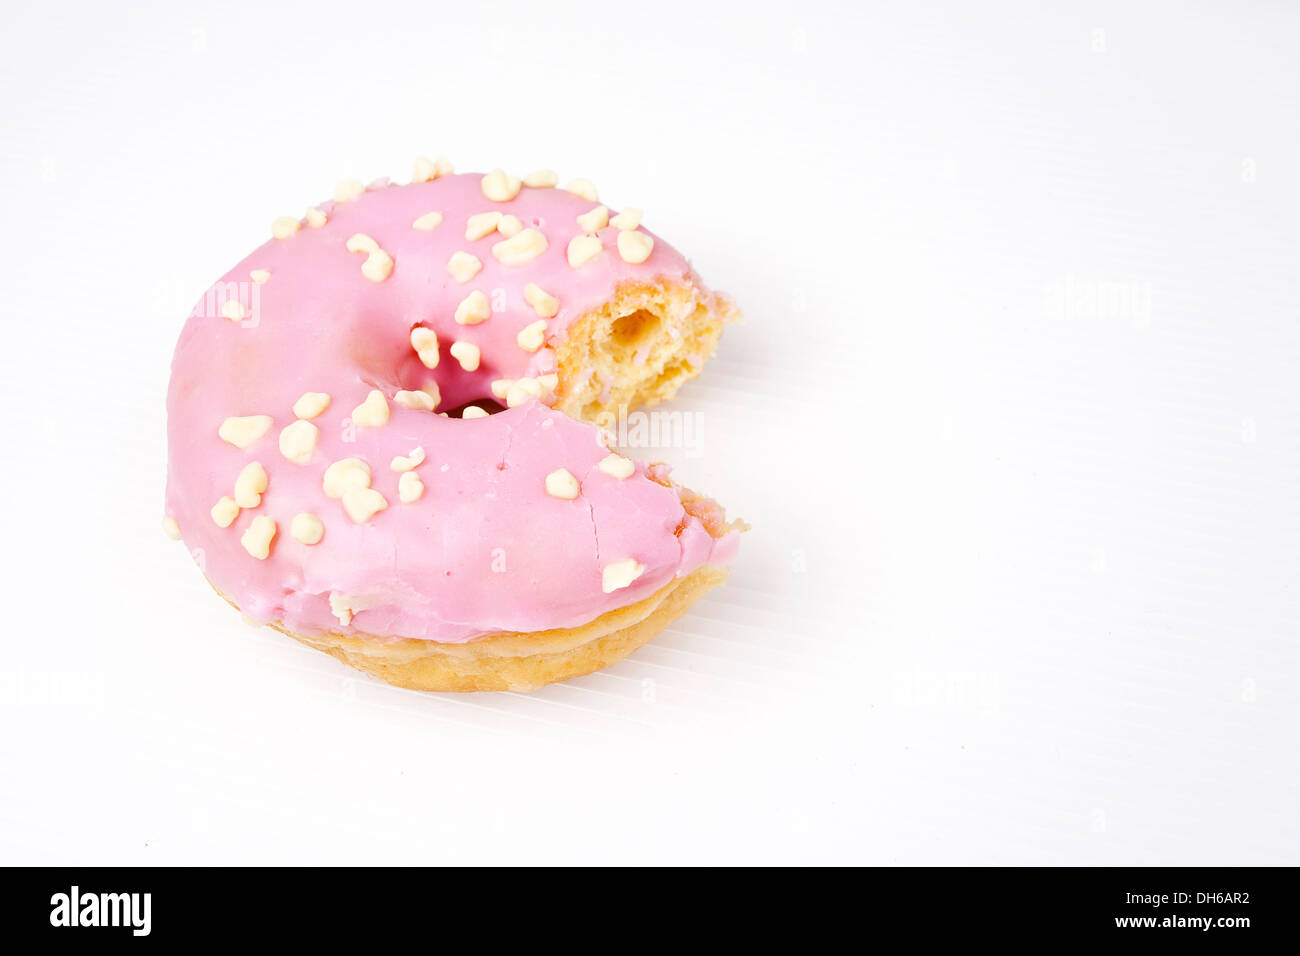 Frosted glazed Donut with chocolate sprinkles - Stock Image